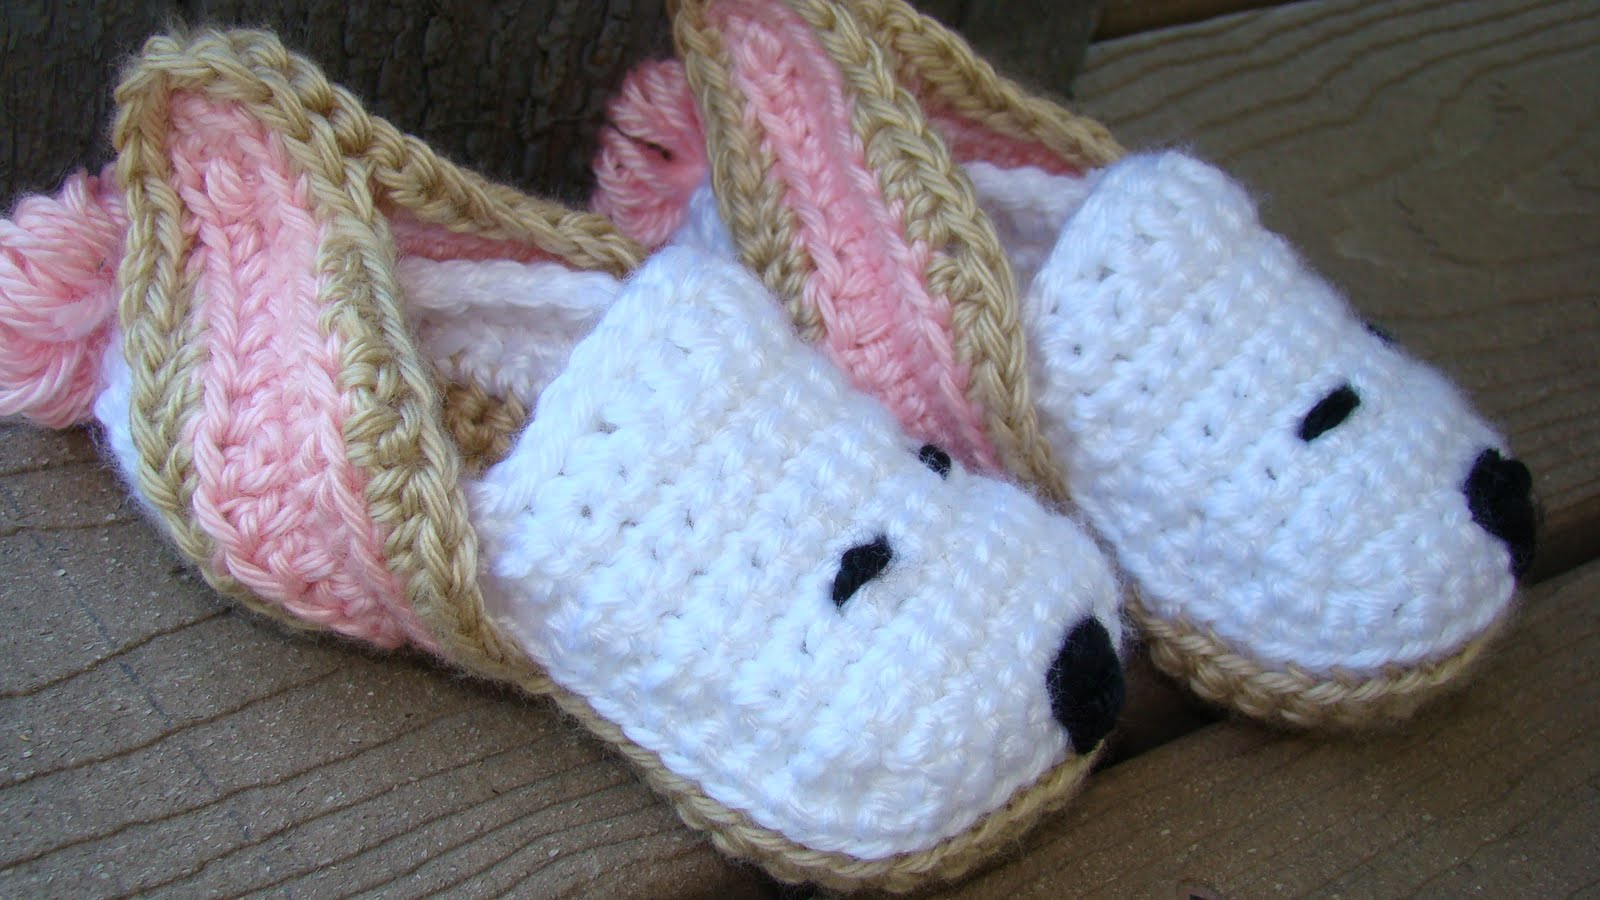 Free Crochet Pattern For Bunny Slippers : Crafts By Starlight: Crochet Slippers - Bunny Slippers